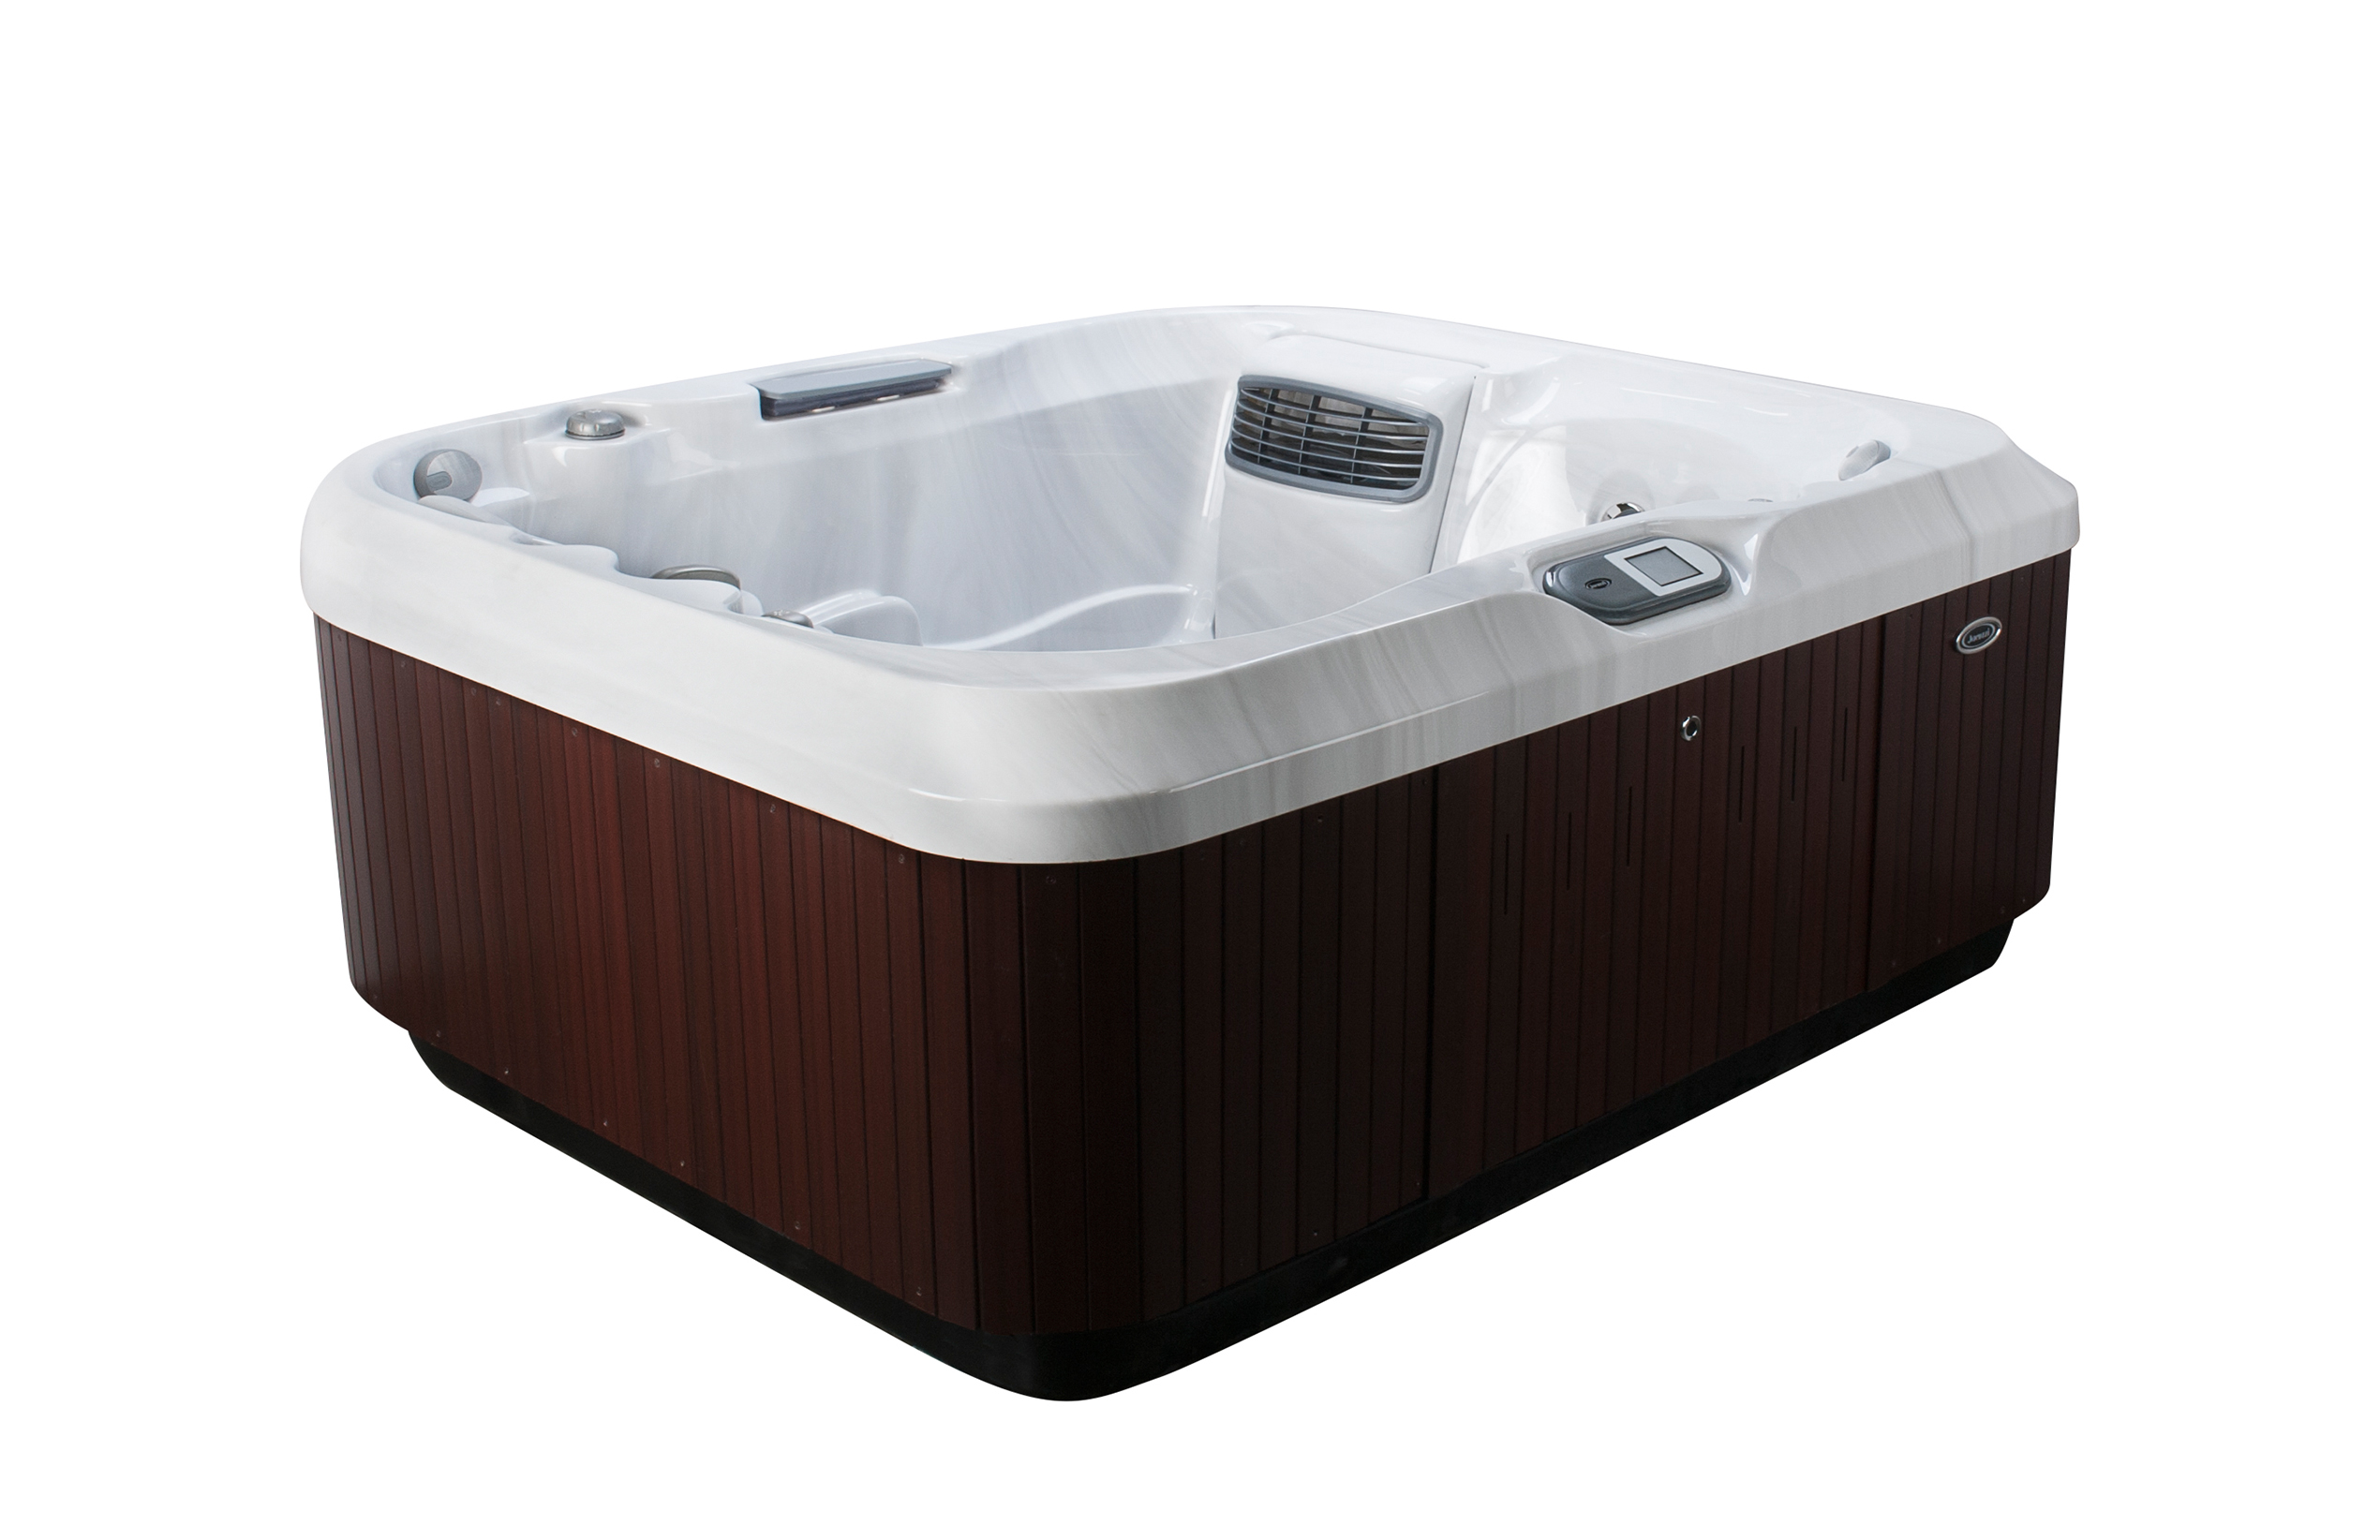 Jacuzzi Brand Pool Pump Jacuzzi J 415 3 Person Hot Tub Ultra Modern Pool And Patio